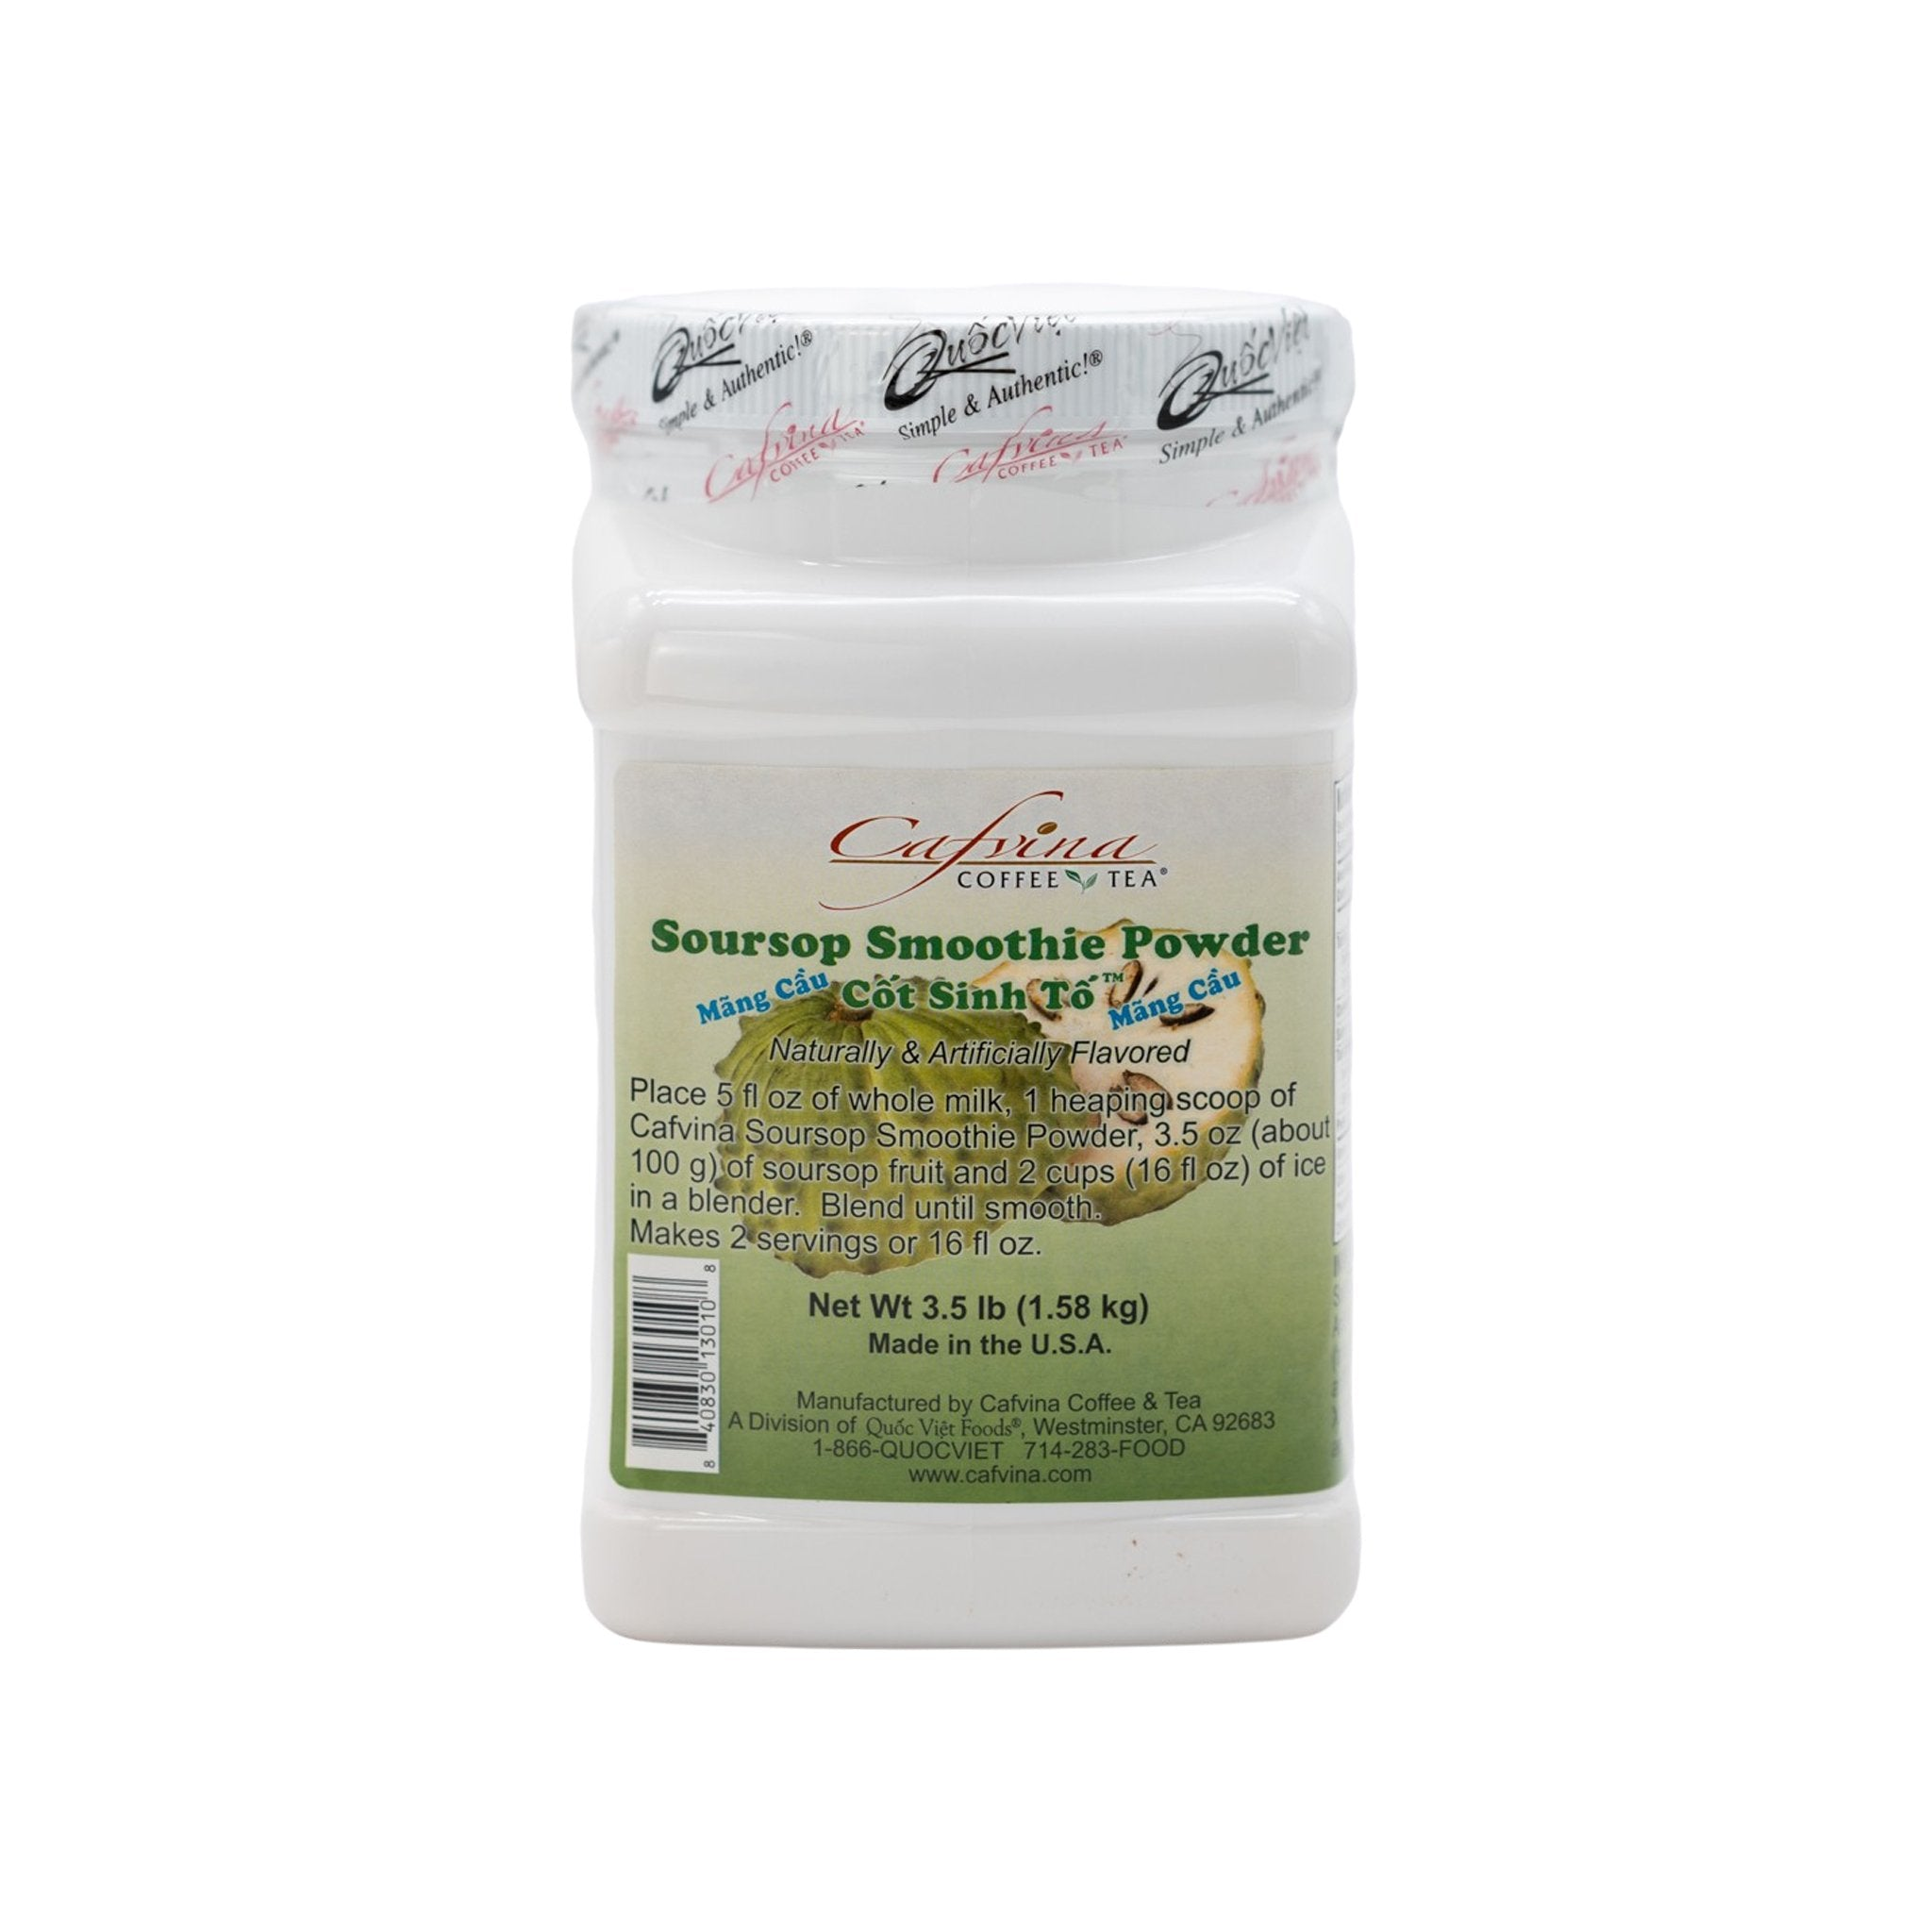 Soursop Smoothie Powder